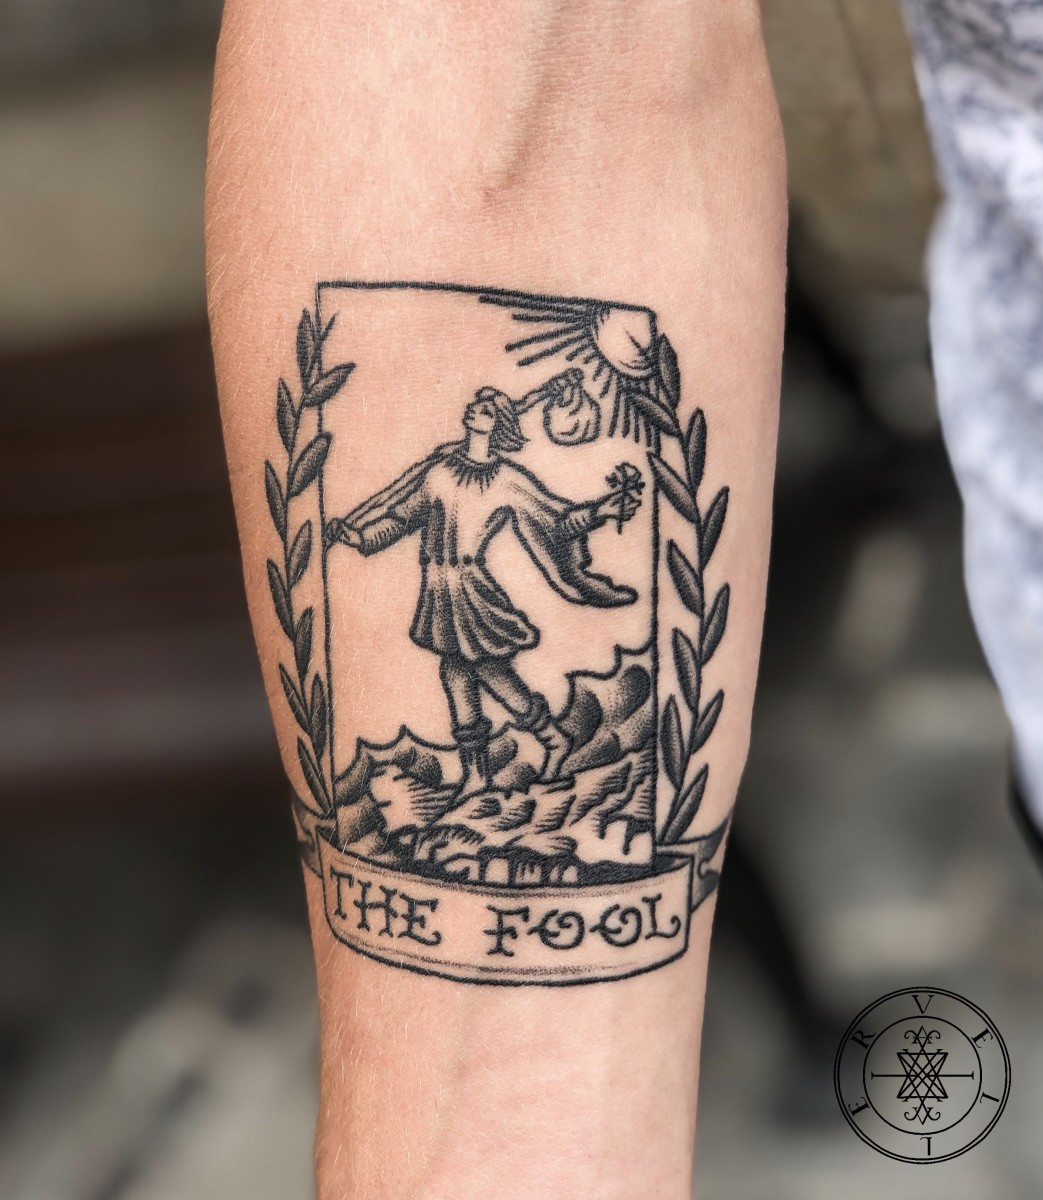 Fool Tarot Card Tattoo (After the  Rider-Waite Deck) by Veller Ádám